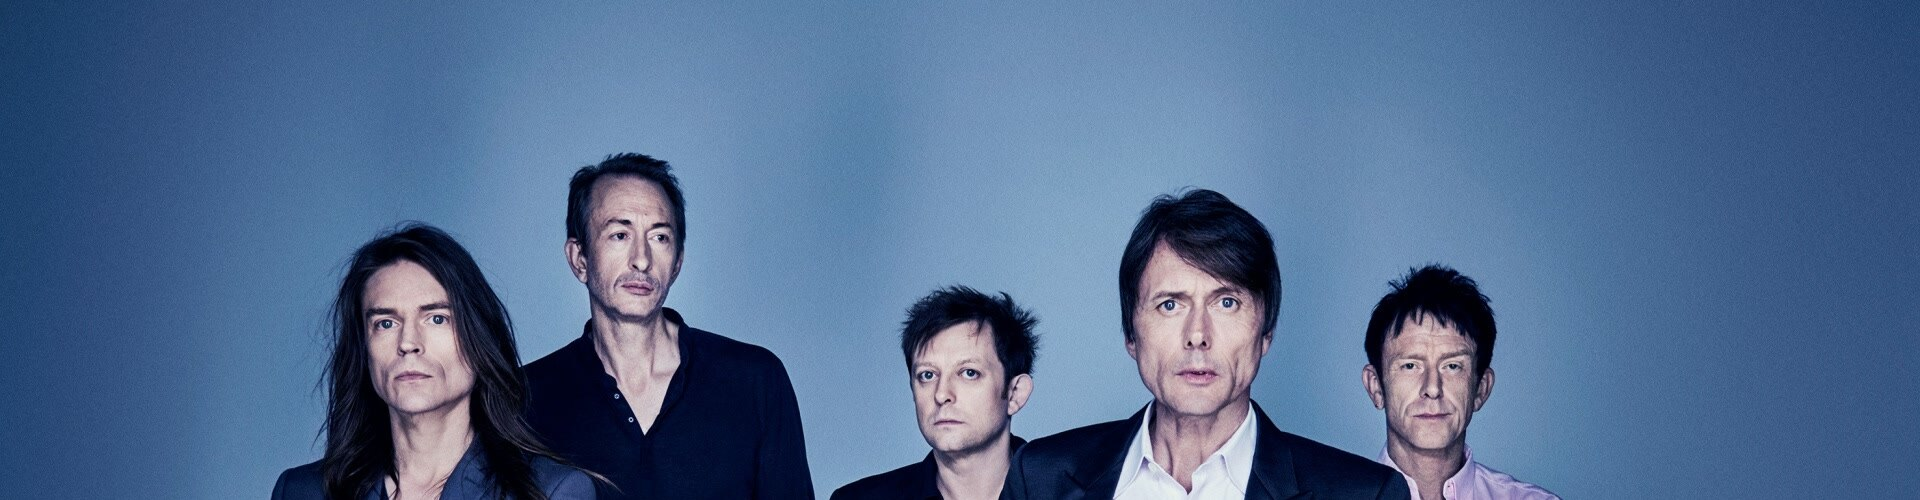 Watch Suede: The Insatiable Ones Online